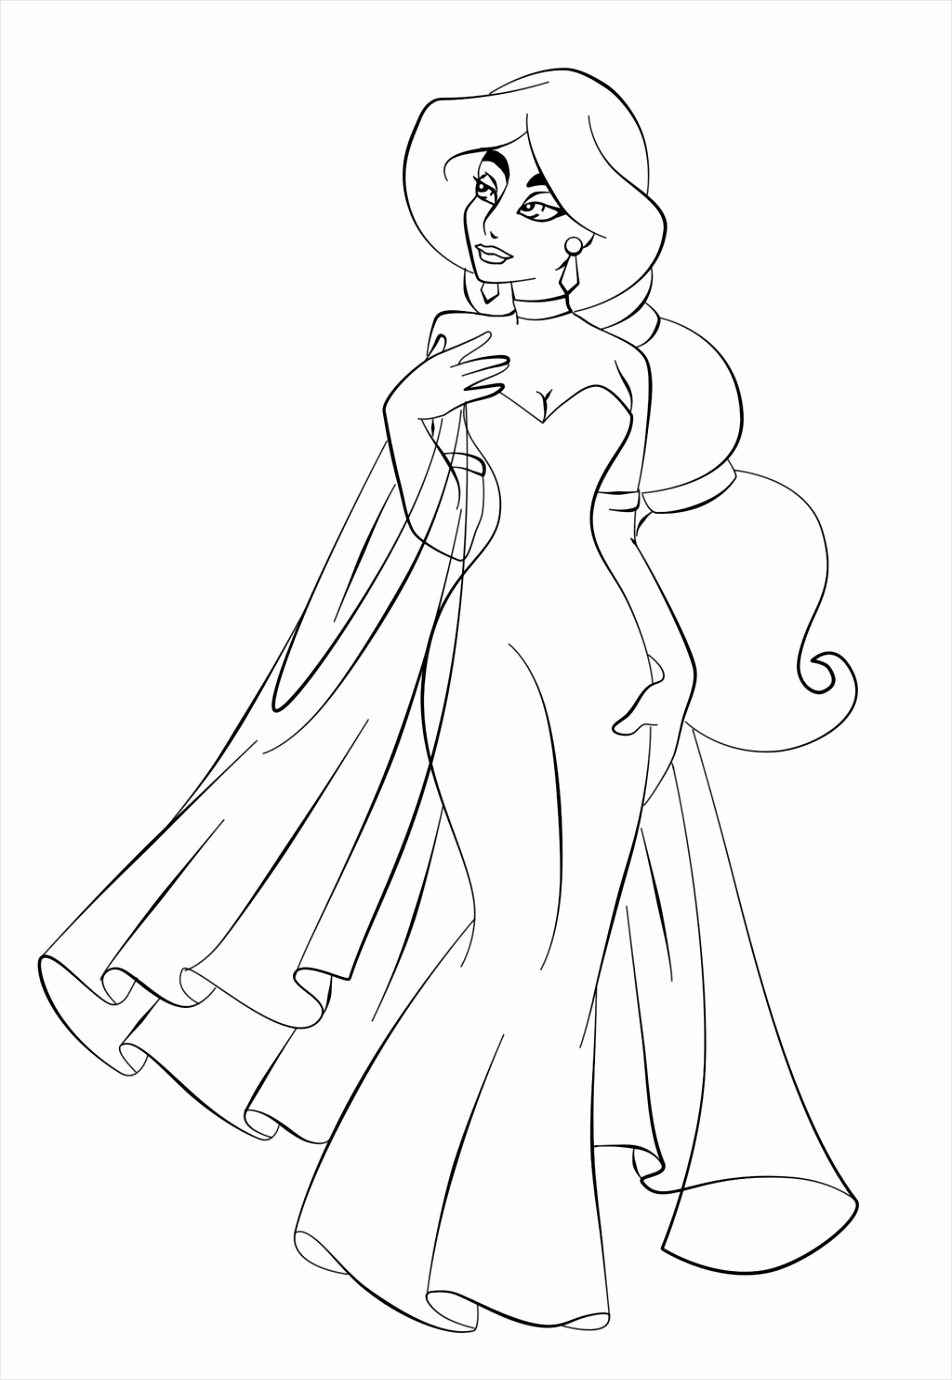 95fb079d230ad9967c5ae3bcad jasmine in wedding dress coloring page aladdin pages of 1024 1469 aetoe